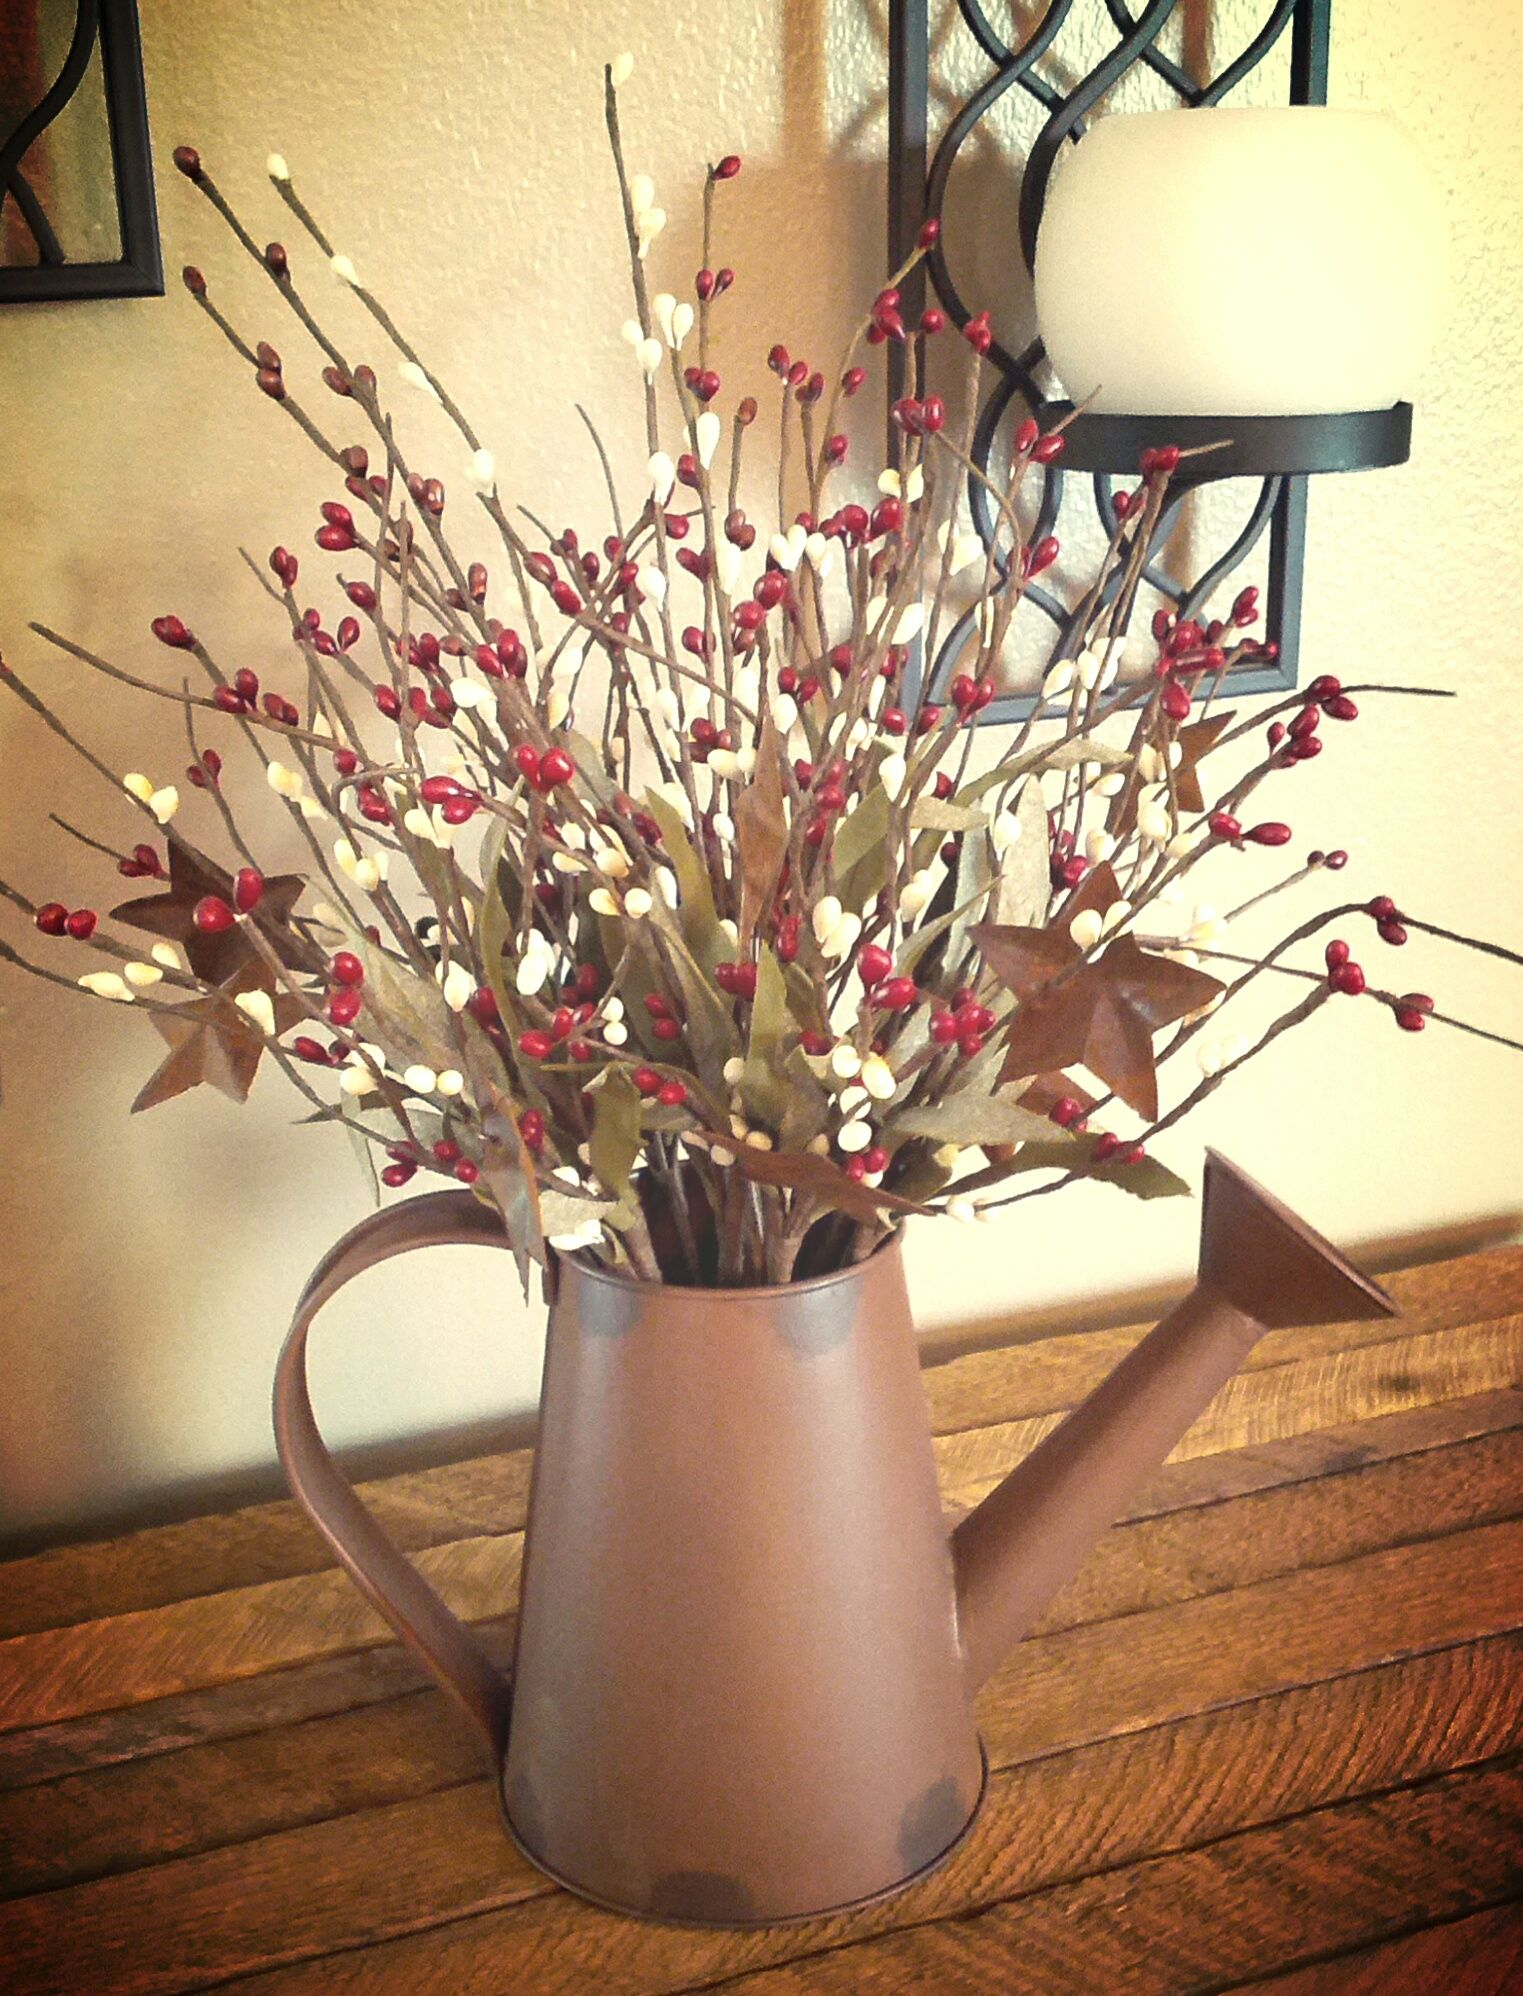 We bought this watering can at a local craft store and filled it with pip berry picks.